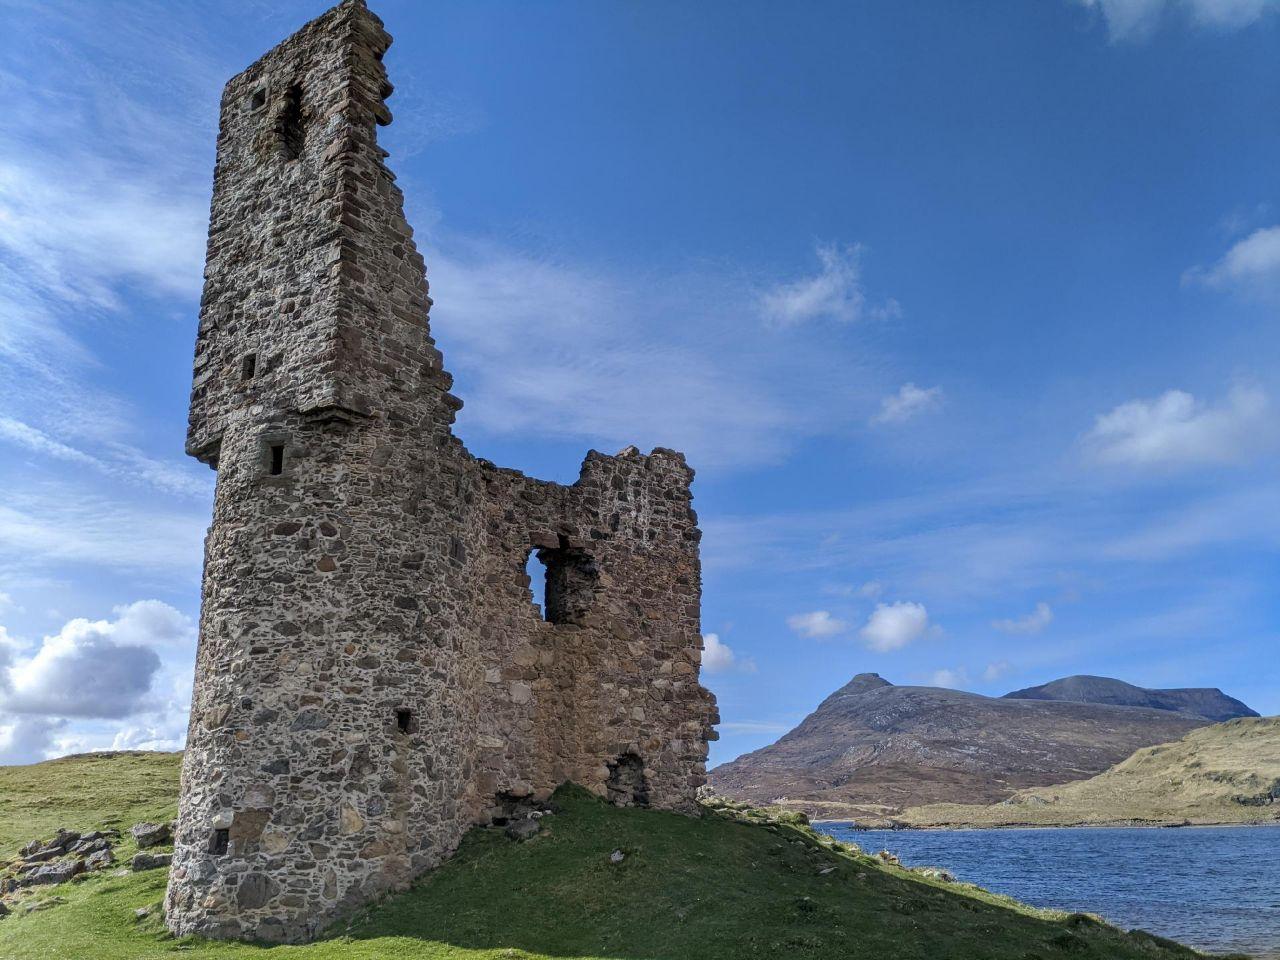 Stone wall fills the foreground, rounded bottom and a flattened face on the higher half. Ruined wall on the right side falls away steeply. Clear, cold, skies above. A few rounded Bens in the background.